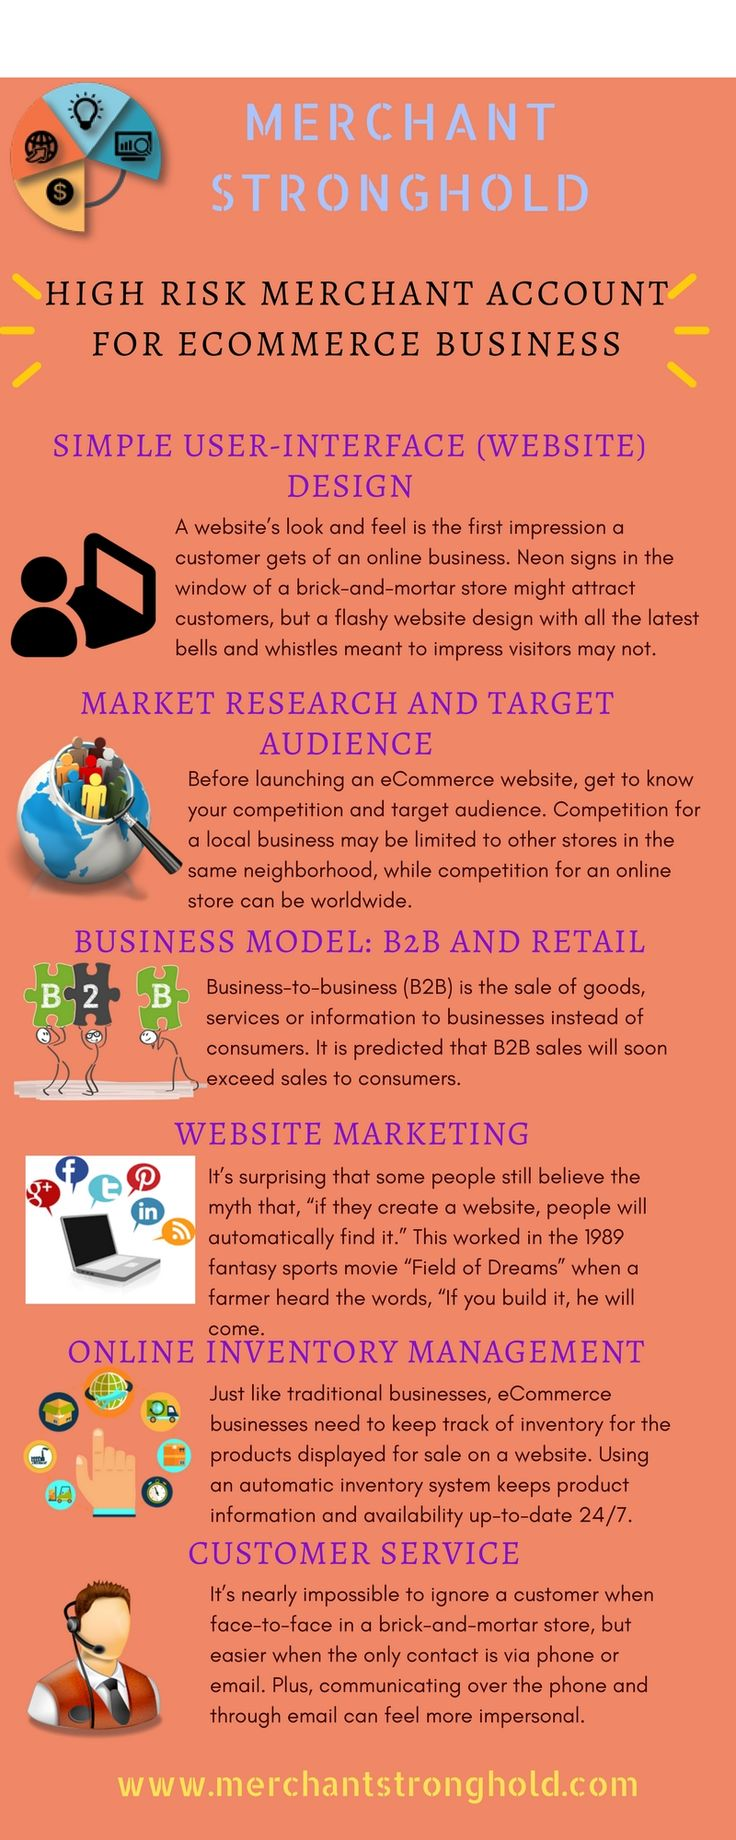 With new eCommerce sites popping up every day, online shopping is becoming the easiest and most convenient way to purchase products and services. But, not all entrepreneurial ventures into the online market have been successful.